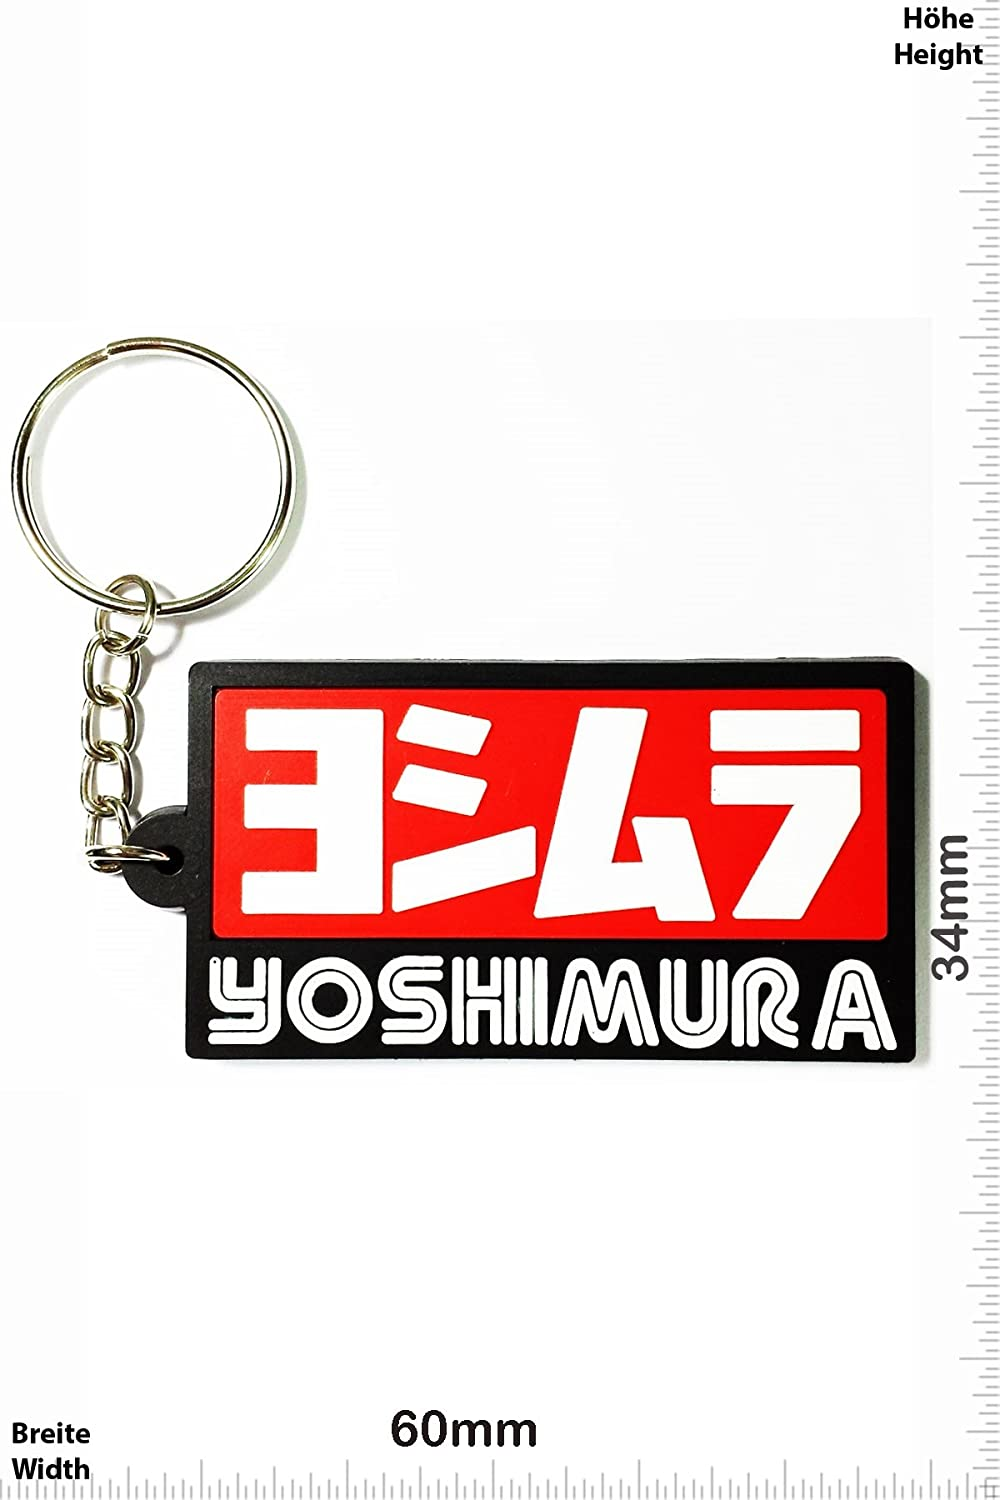 Keychains Porte-clés - Yoshimura - Tuning - Motorcycle - Motorbike - Car - Scooter - Key Ring - Kautschuk Rrubber Keyring - perfect also bags, wallets or briefcase - Give away